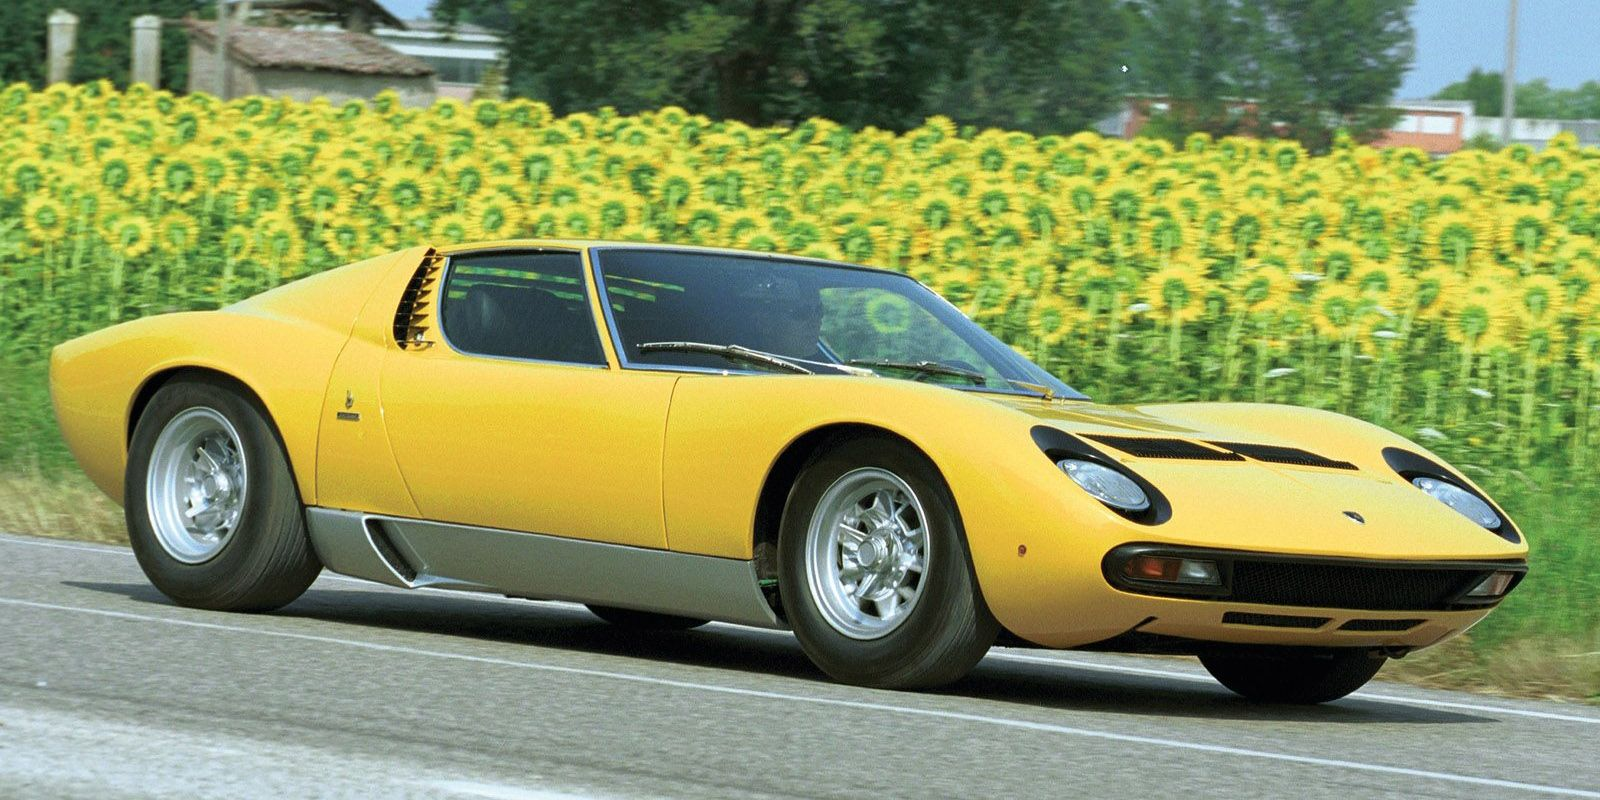 """<p>The Miura had a 4.0 liter V12 that made 430 bhp and was named after a breed of particularly <a href=""""http://www.carmagazine.co.uk/features/car-culture/a-load-of-bulls-a-potted-history-of-lamborghini-names/"""">fierce and powerful Spanish fighting bulls</a> -- a fitting name for one of Lamborghini's most iconic cars to date.</p>"""